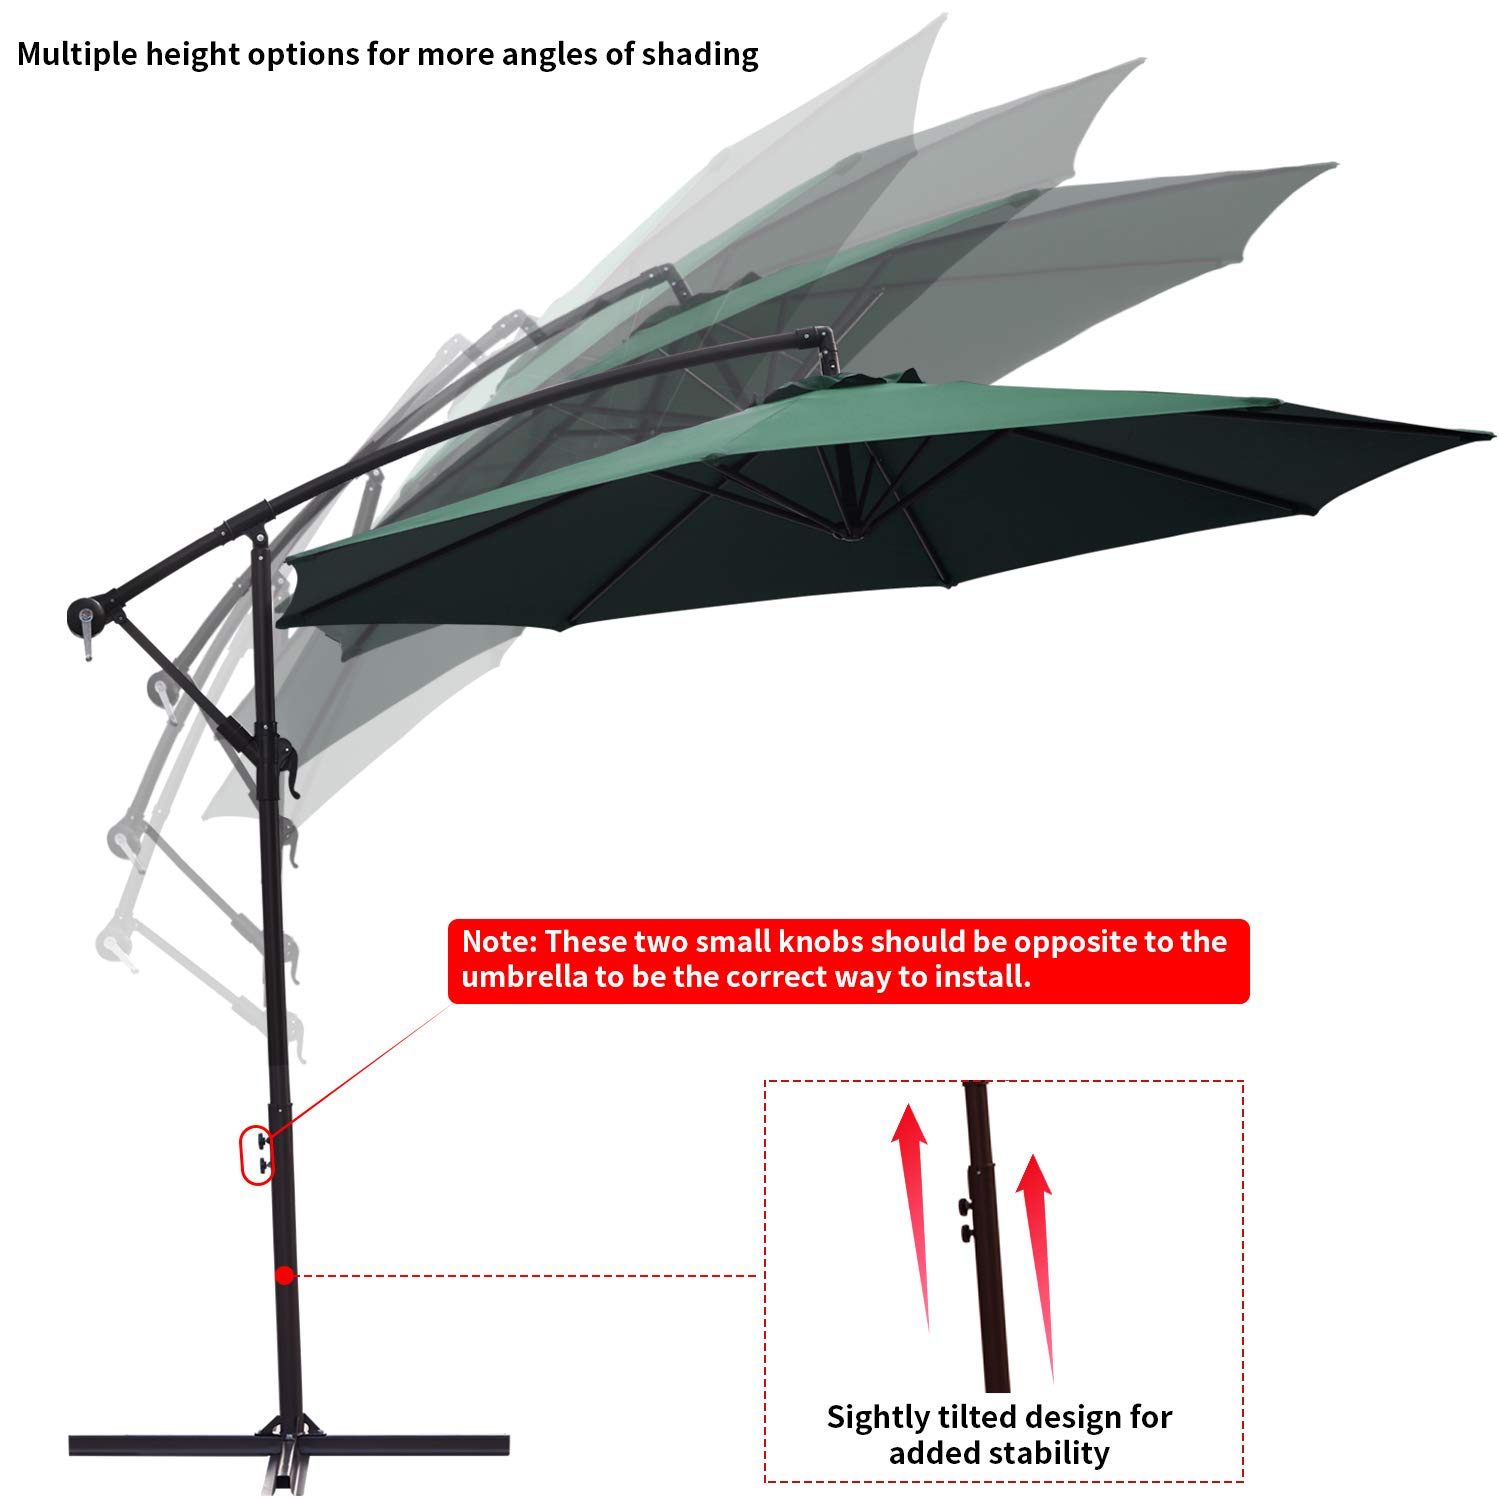 RUBEDER Offset Umbrella - 10Ft Cantilever Patio Hanging Umbrella,Outdoor Market Umbrellas with Crank Lift & Cross Base (10 Ft, Dark Green) by RUBEDER (Image #6)